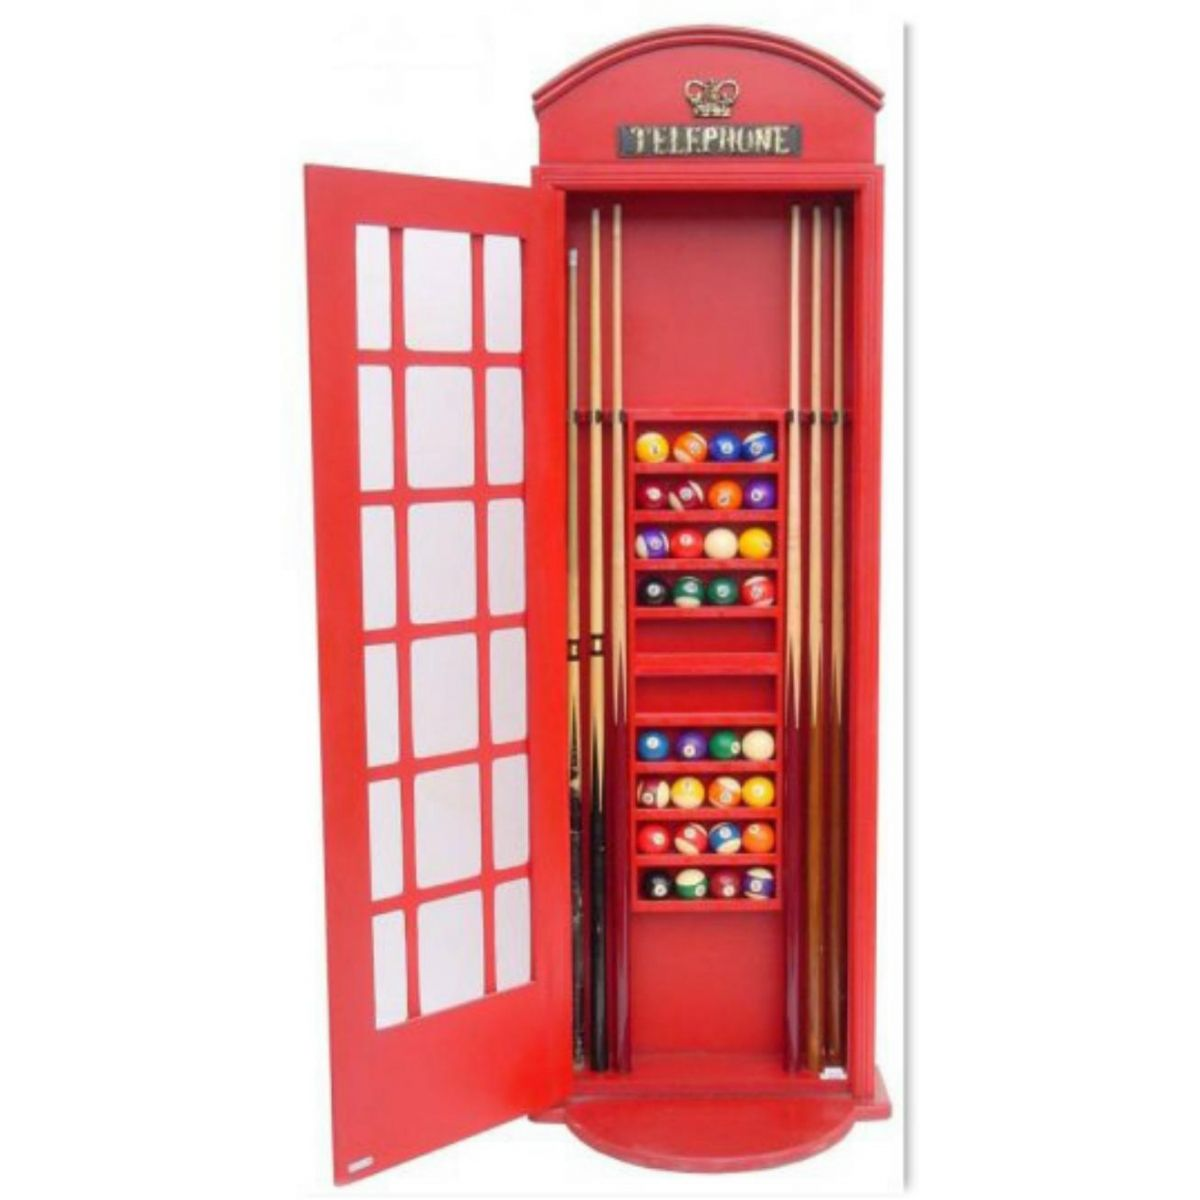 Wall Mounted Red English Phone Booth Billiards Pool Table Cabinet For Cue Sticks Chalk